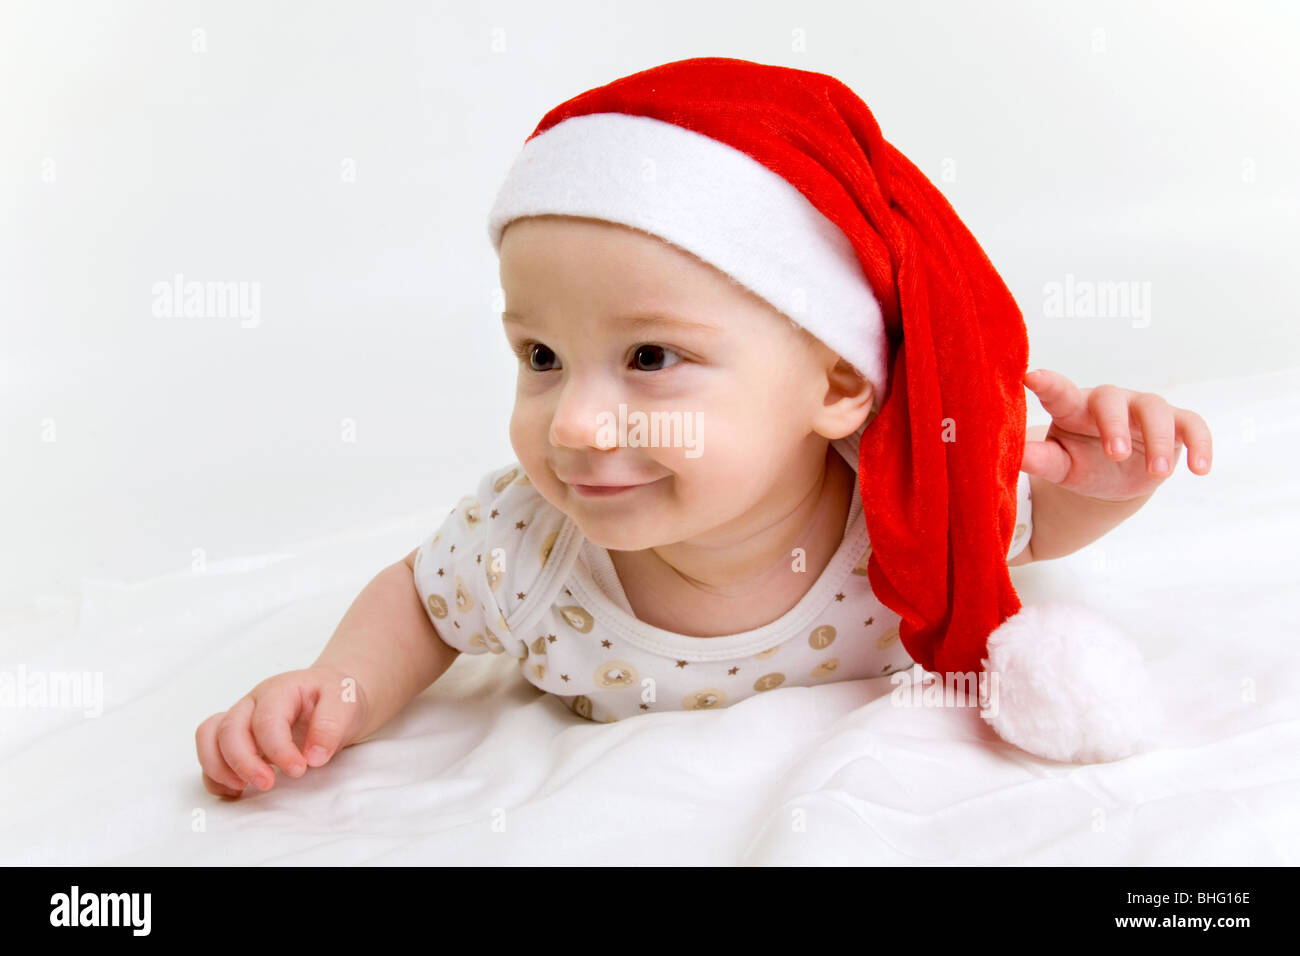 portrait of adorable baby boy in Santa hat on white background - Stock Image